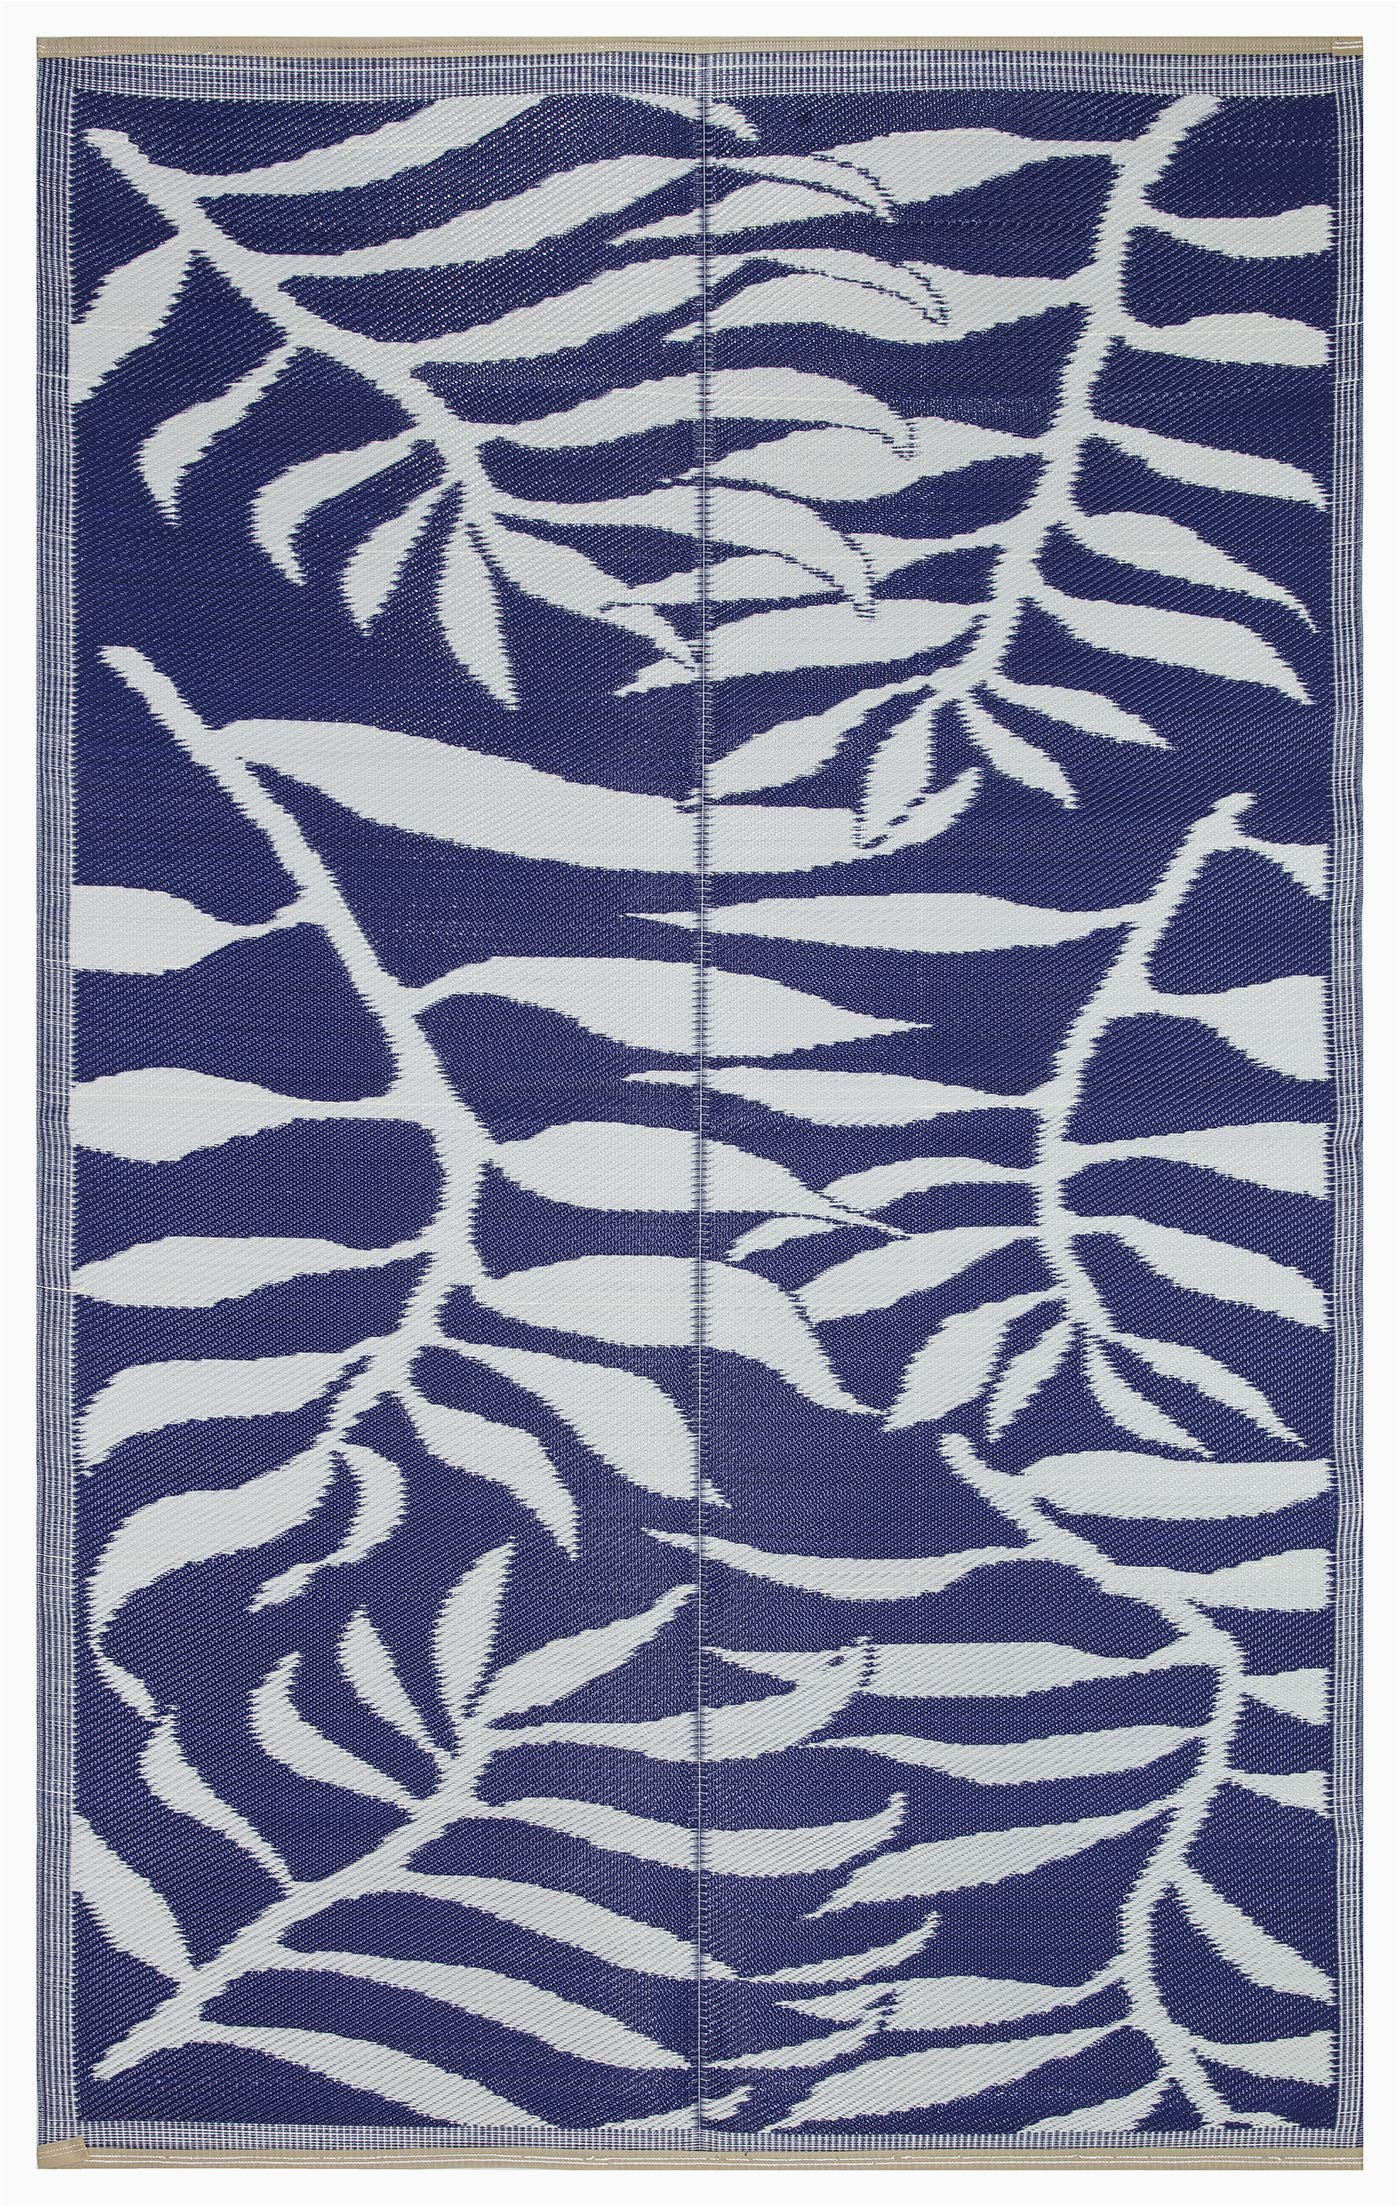 lightweight indoor outdoor reversible plastic area rug 5 9 x 8 9 feet leaf pattern blue white